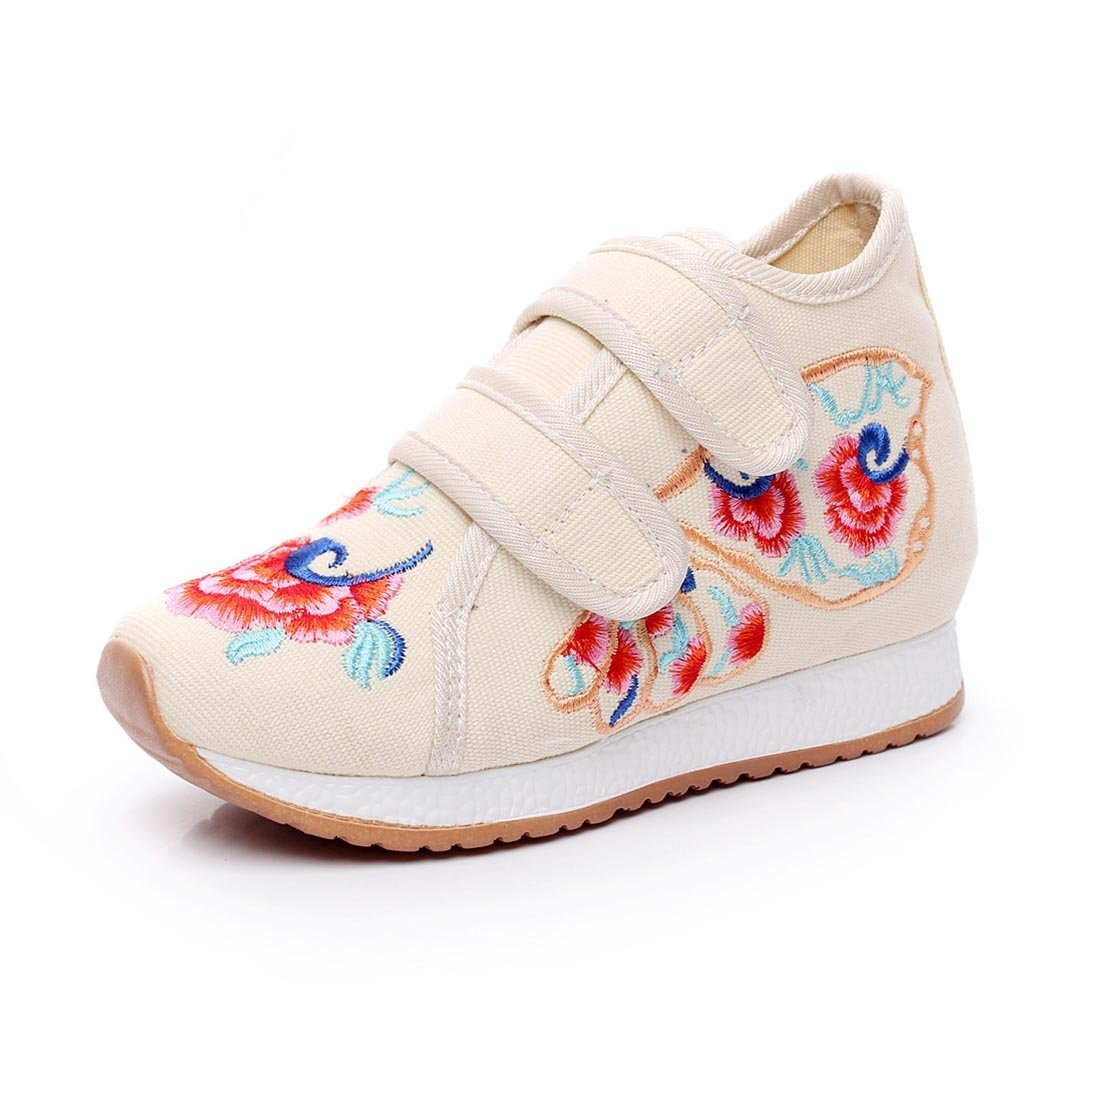 YIBLBOX Boys Girls Denim Embroidery Fashion Sneakers Running Walking Shoes